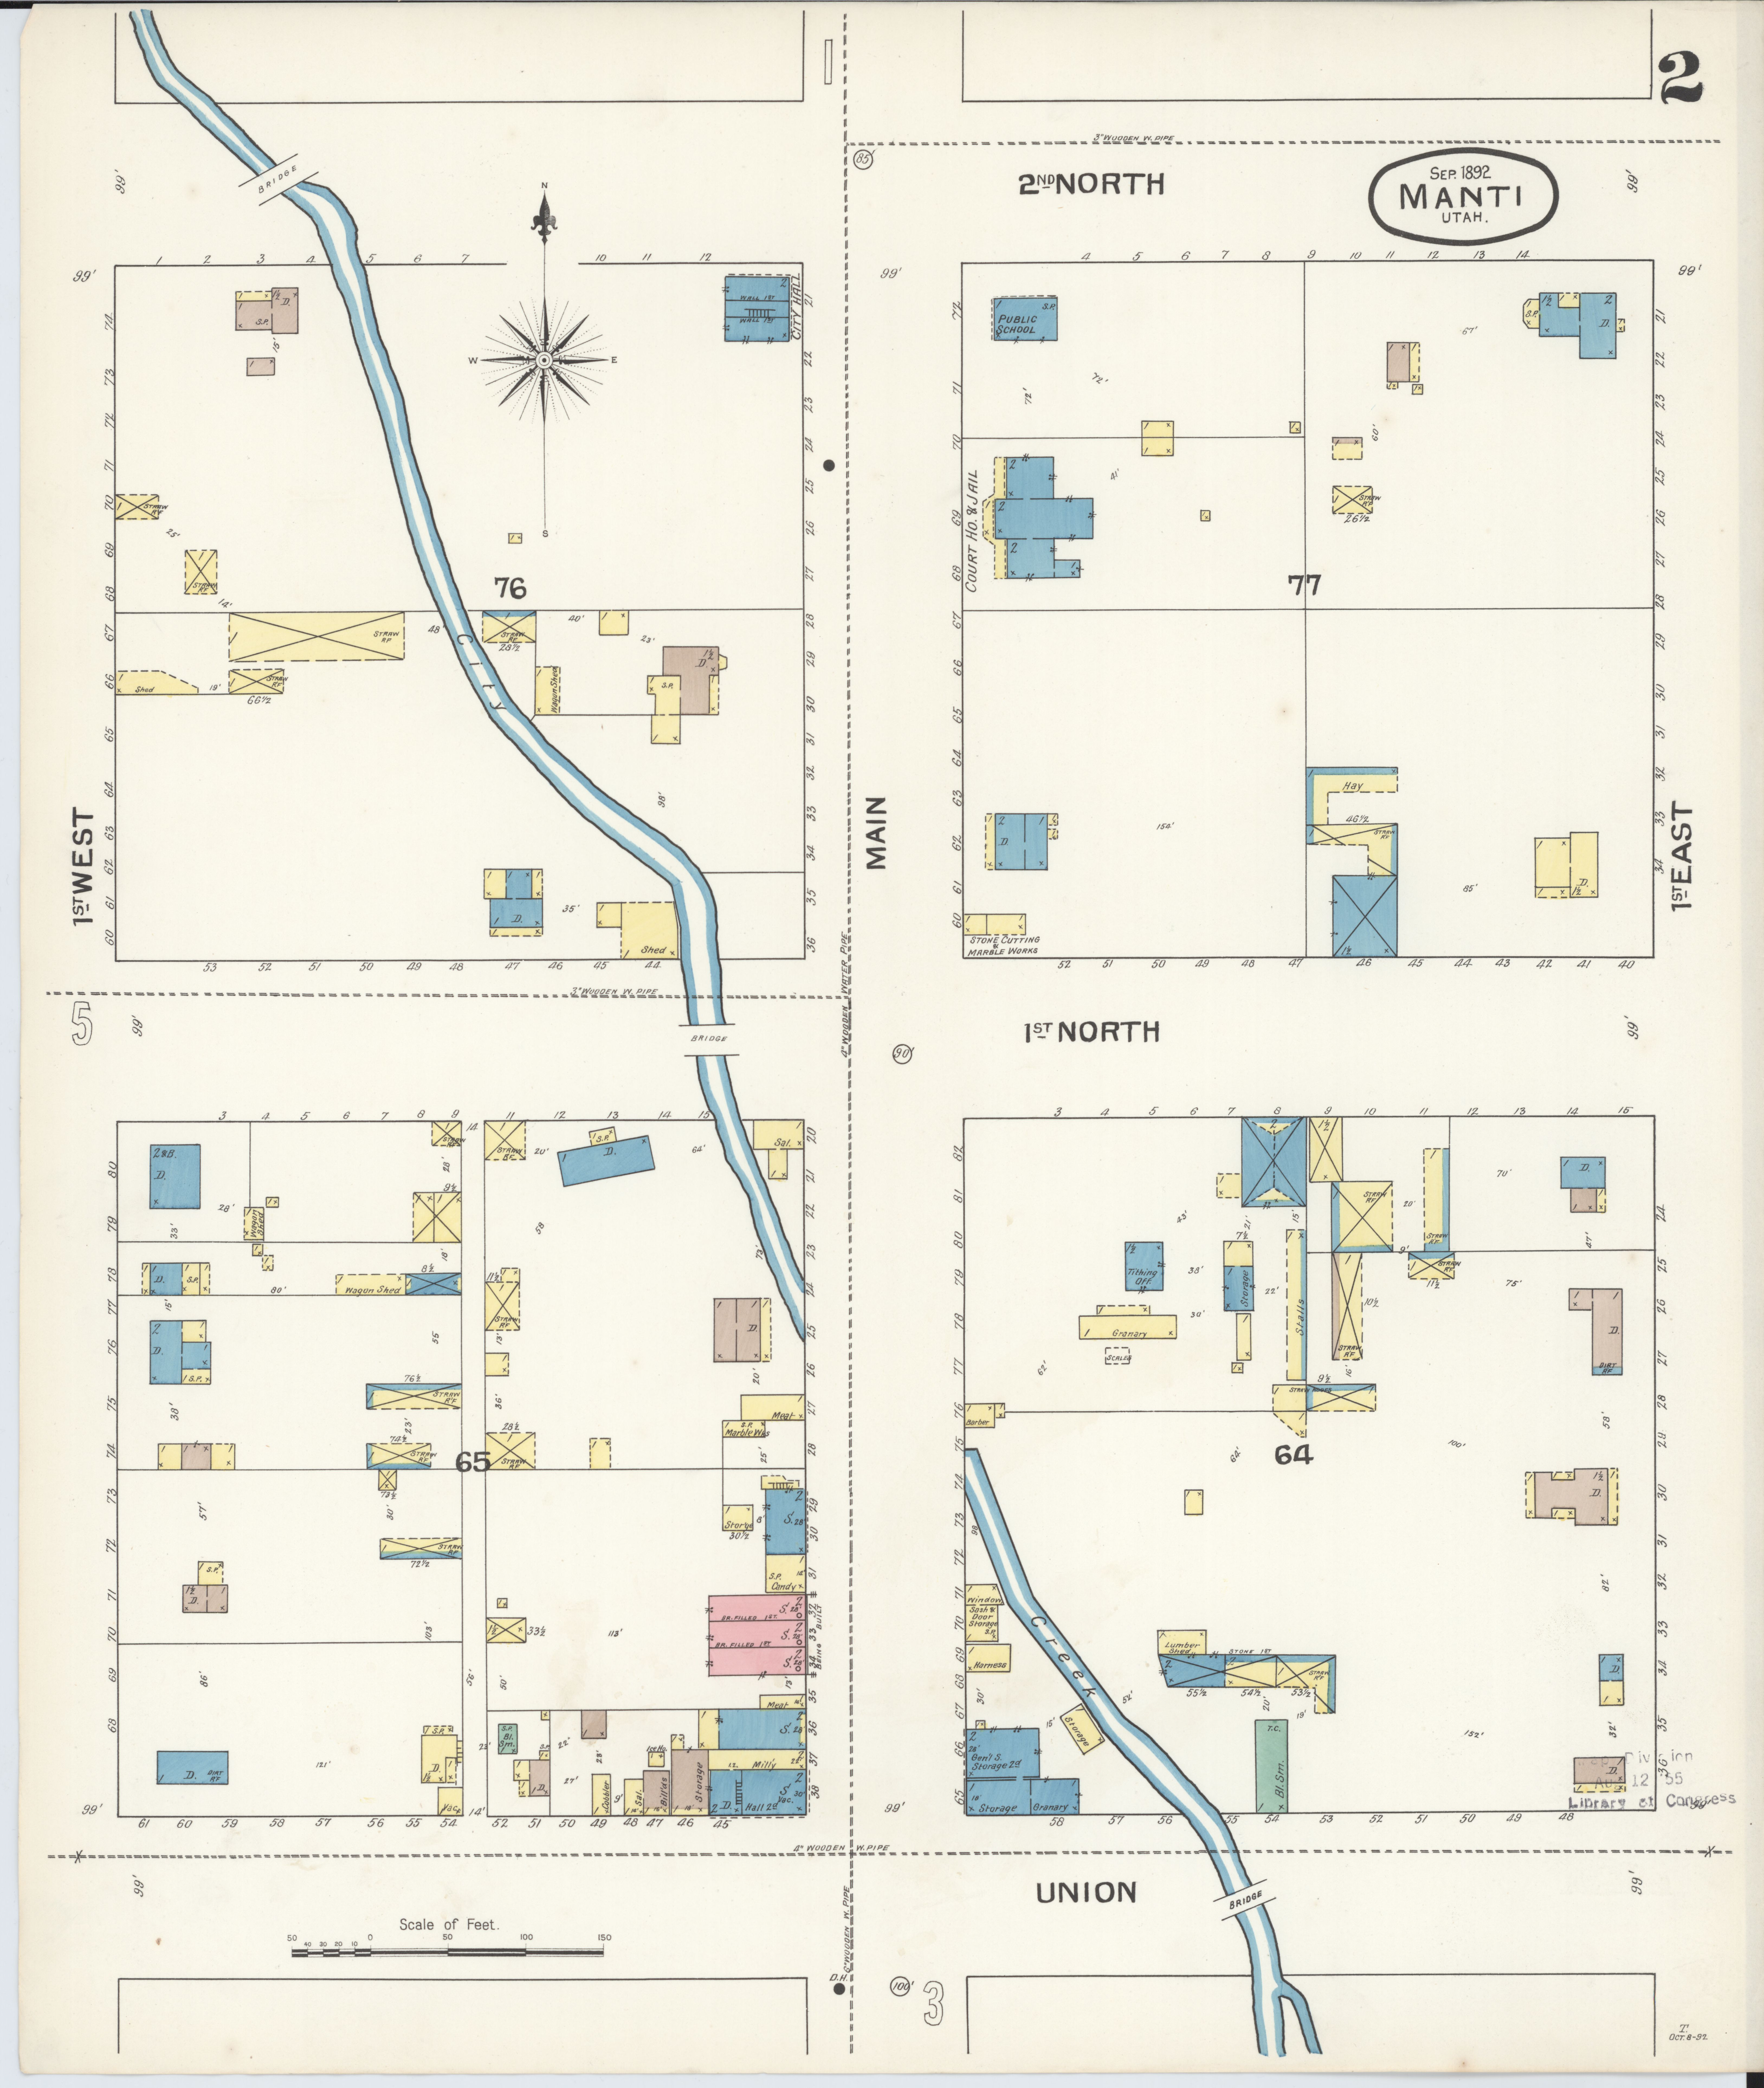 File:Sanborn Fire Insurance Map From Manti, Sanpete County